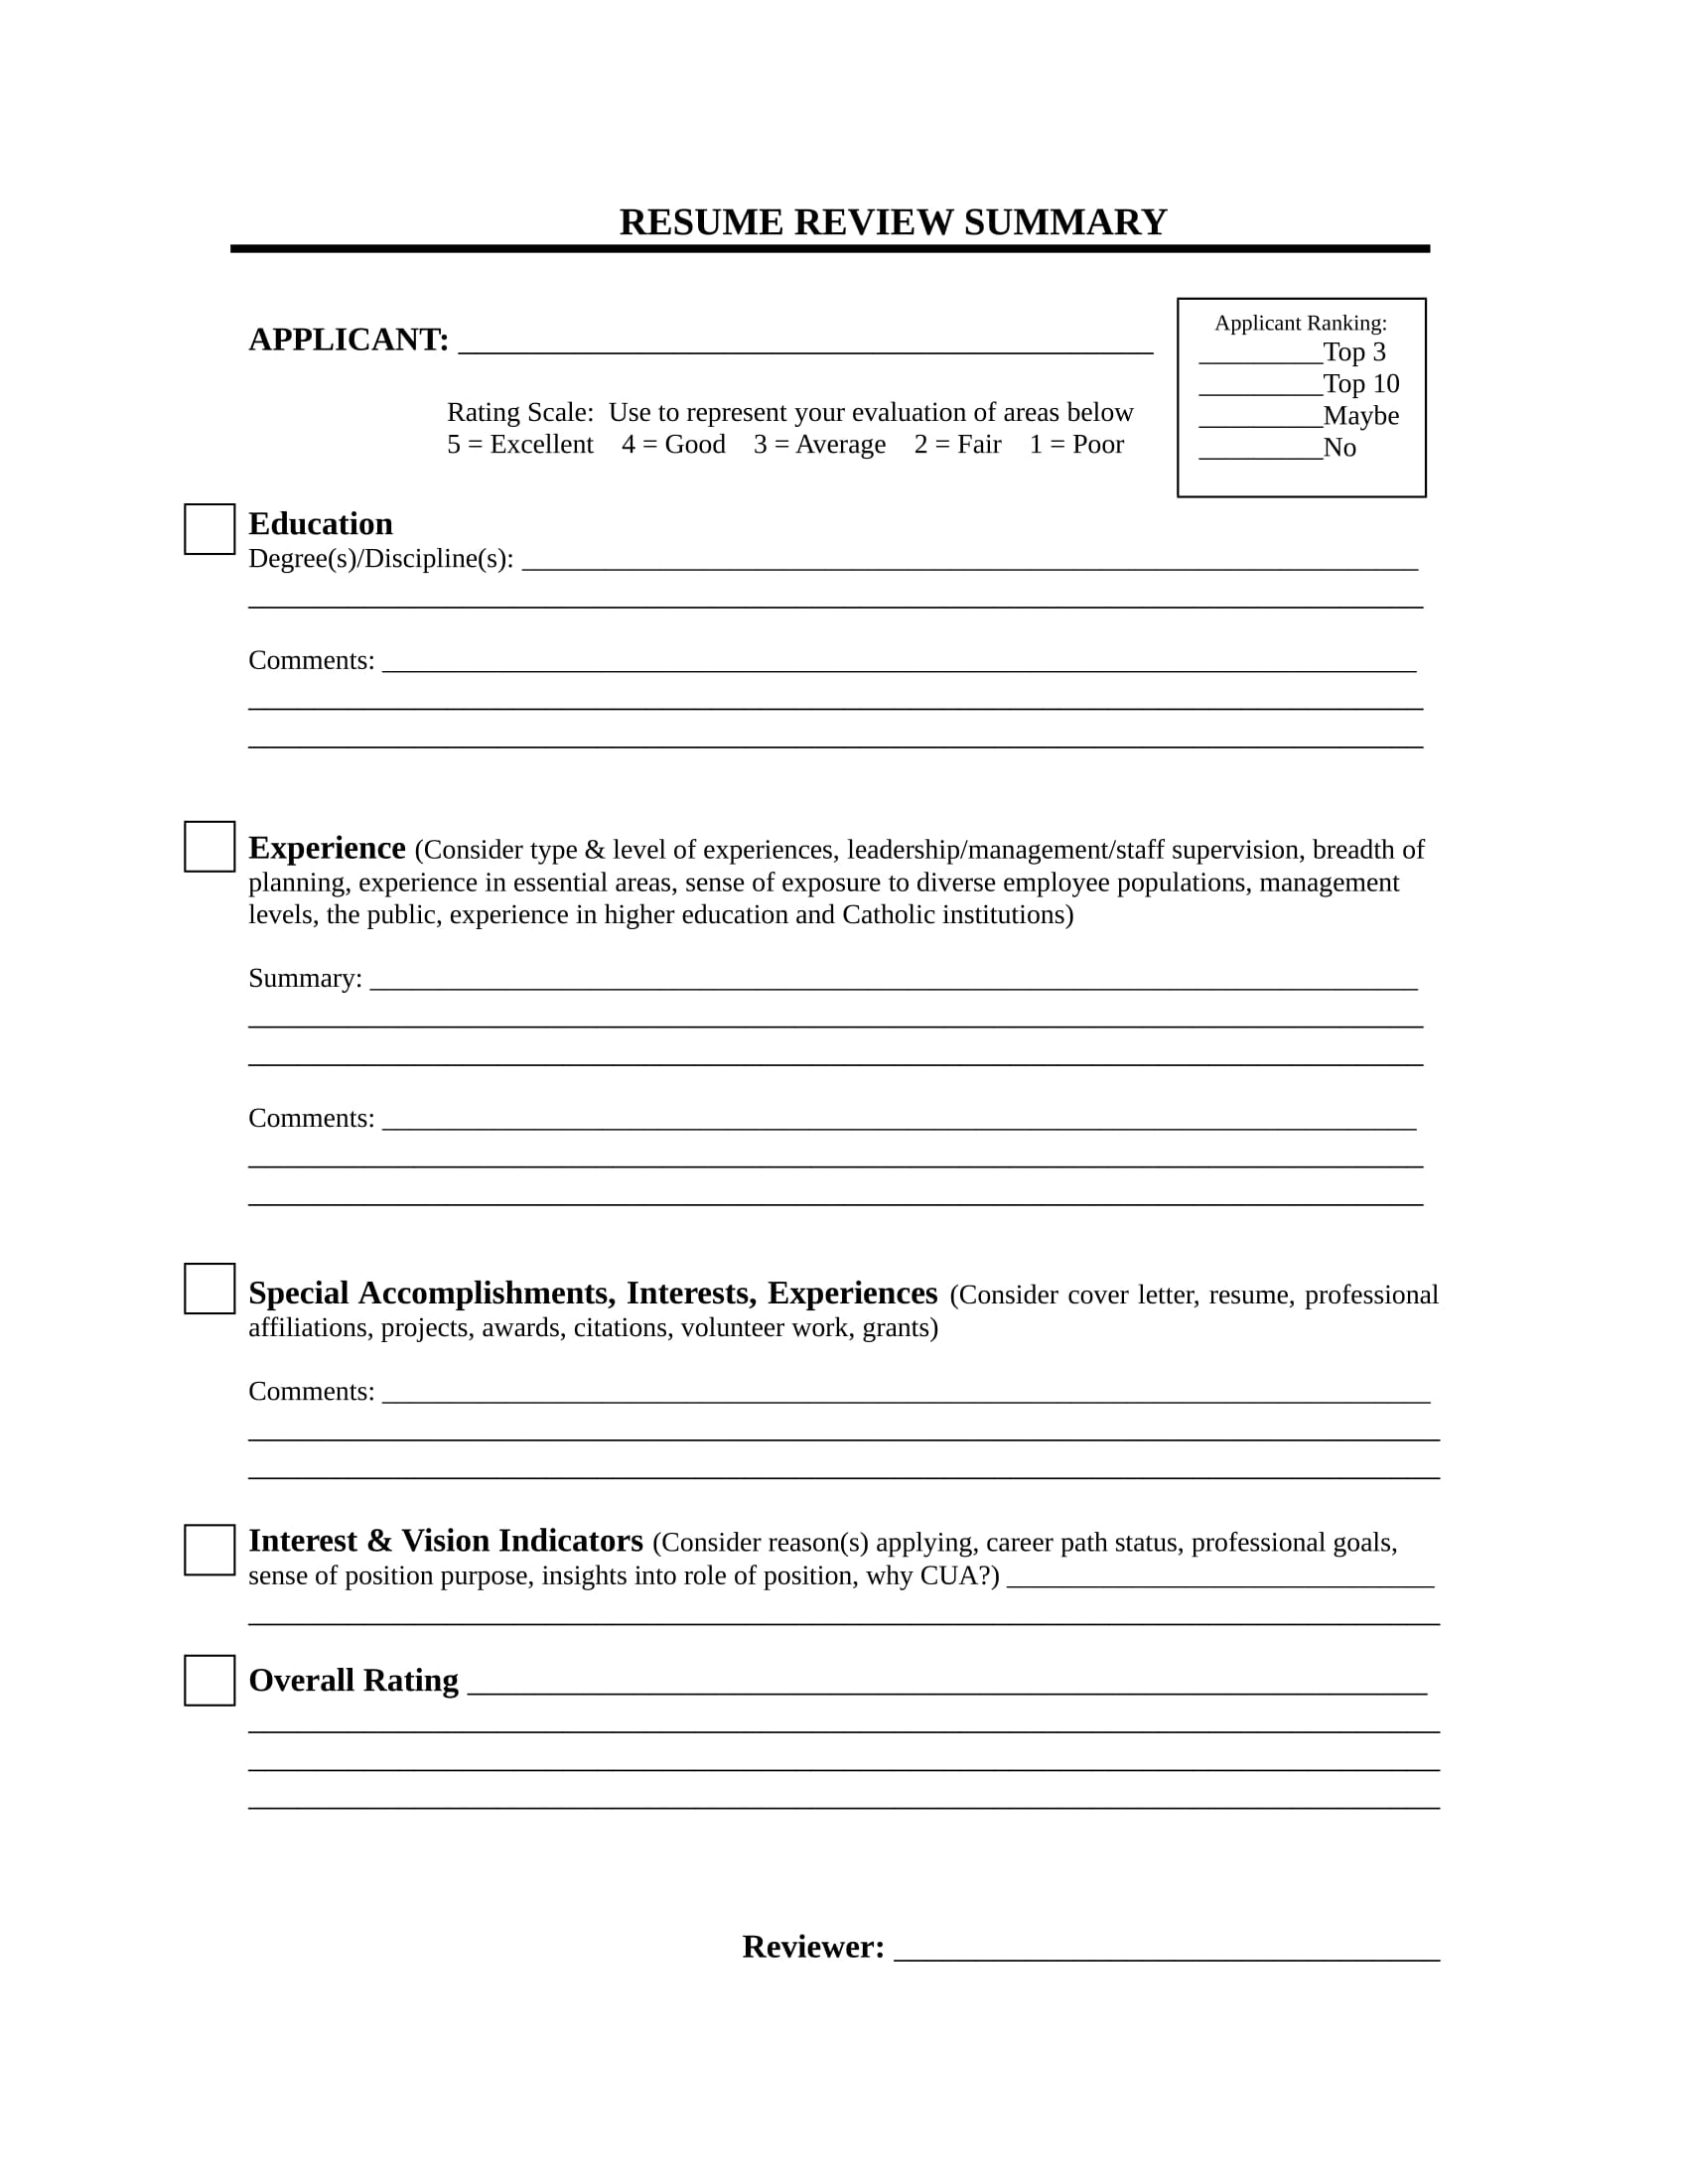 14  resume evaluation forms